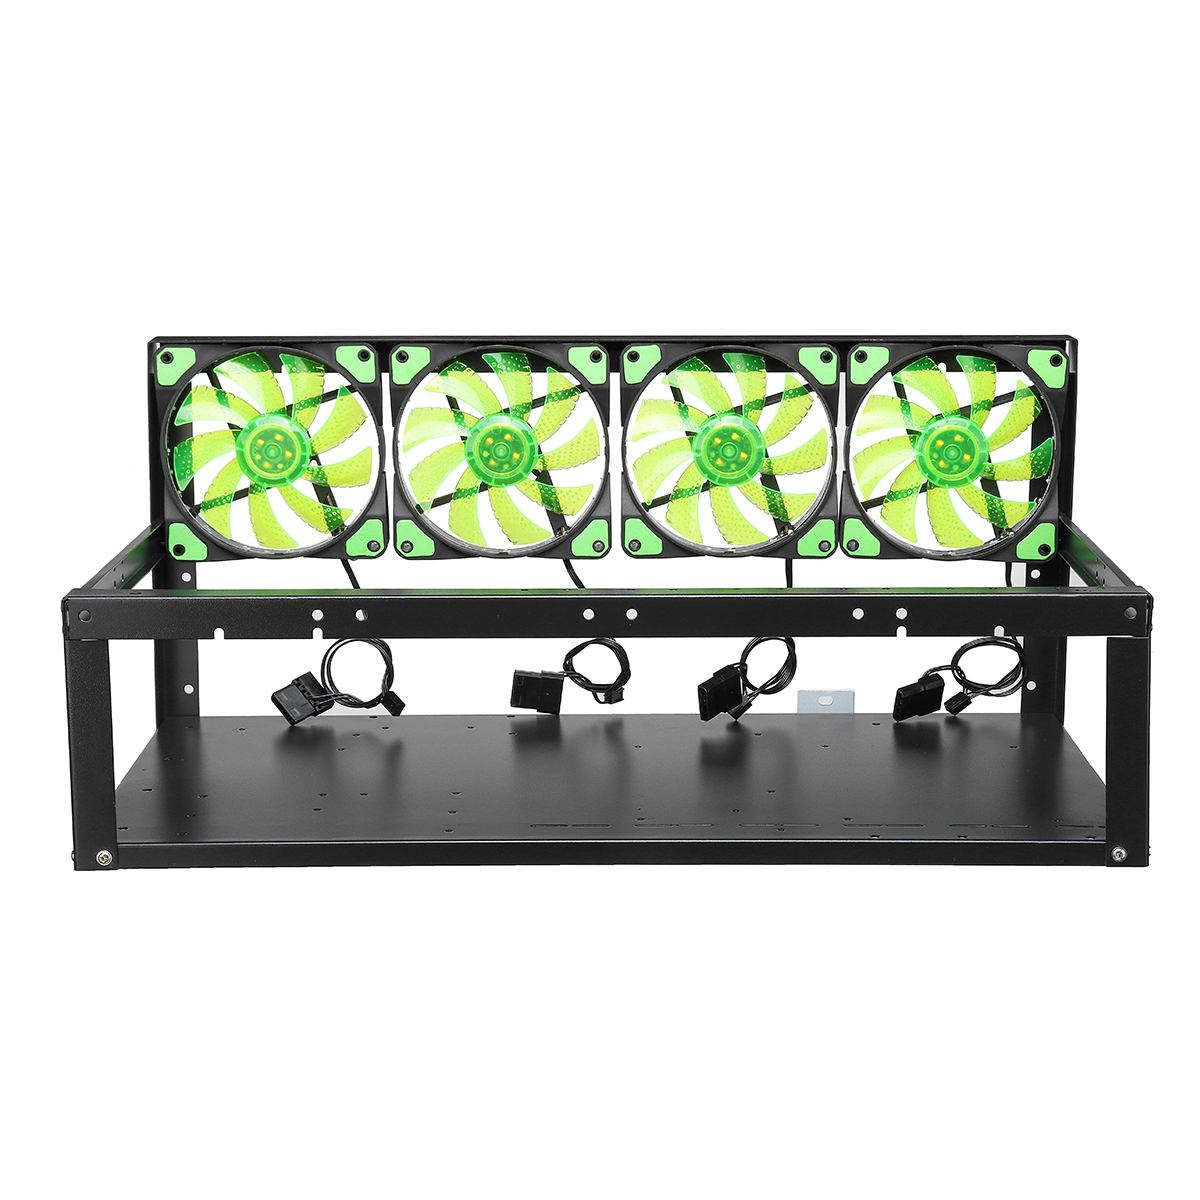 6 GPU Mining Miner Frame Open Air Rig Case + 4 Light Fans For ETH BTC Ethereum